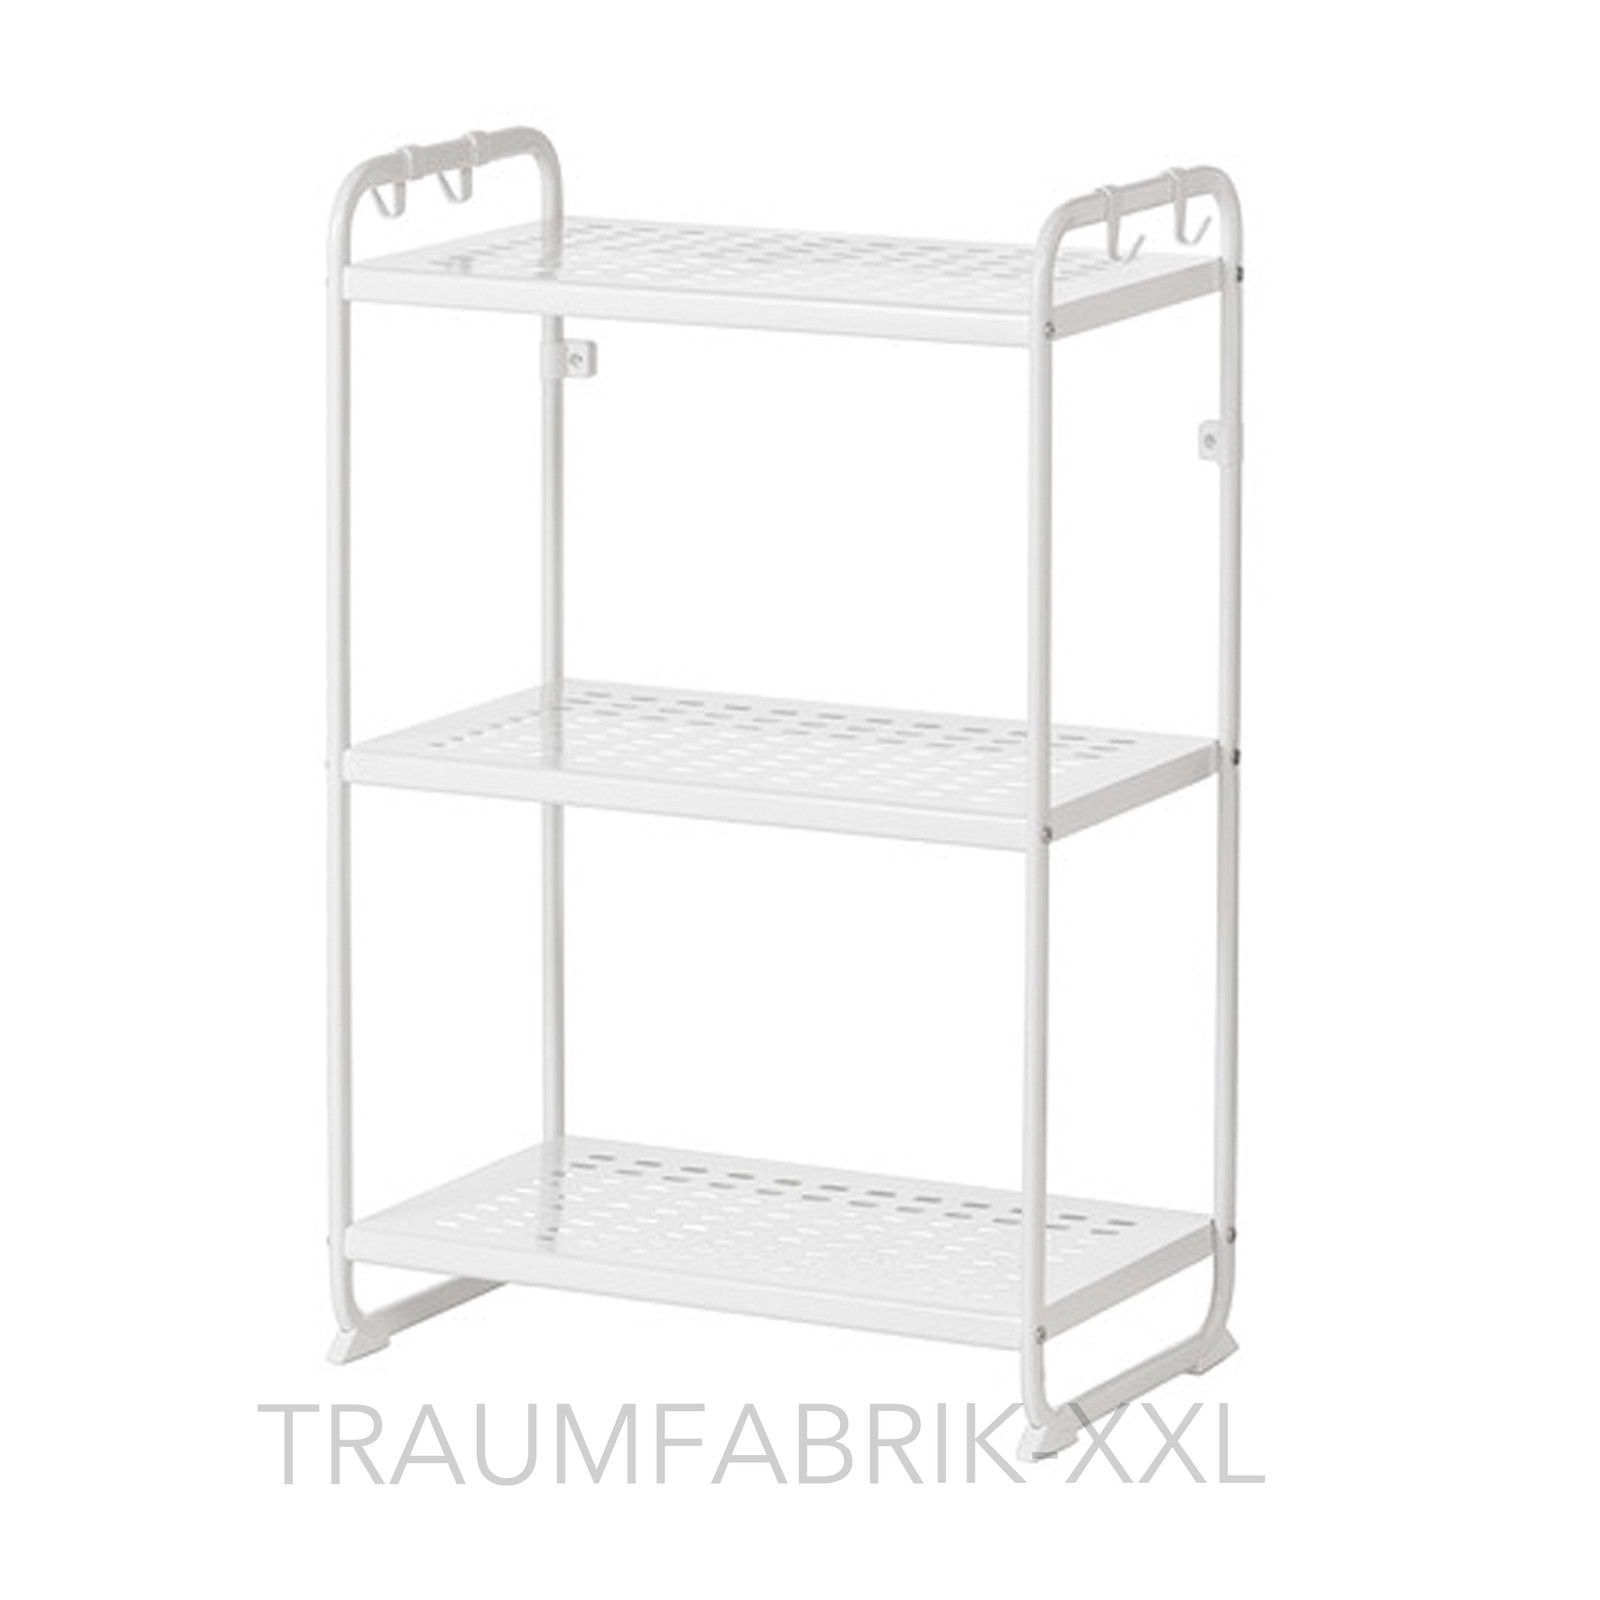 ikea badregal weiss regal handtuchregal badm bel mulig standregal aufbewahrung traumfabrik xxl. Black Bedroom Furniture Sets. Home Design Ideas